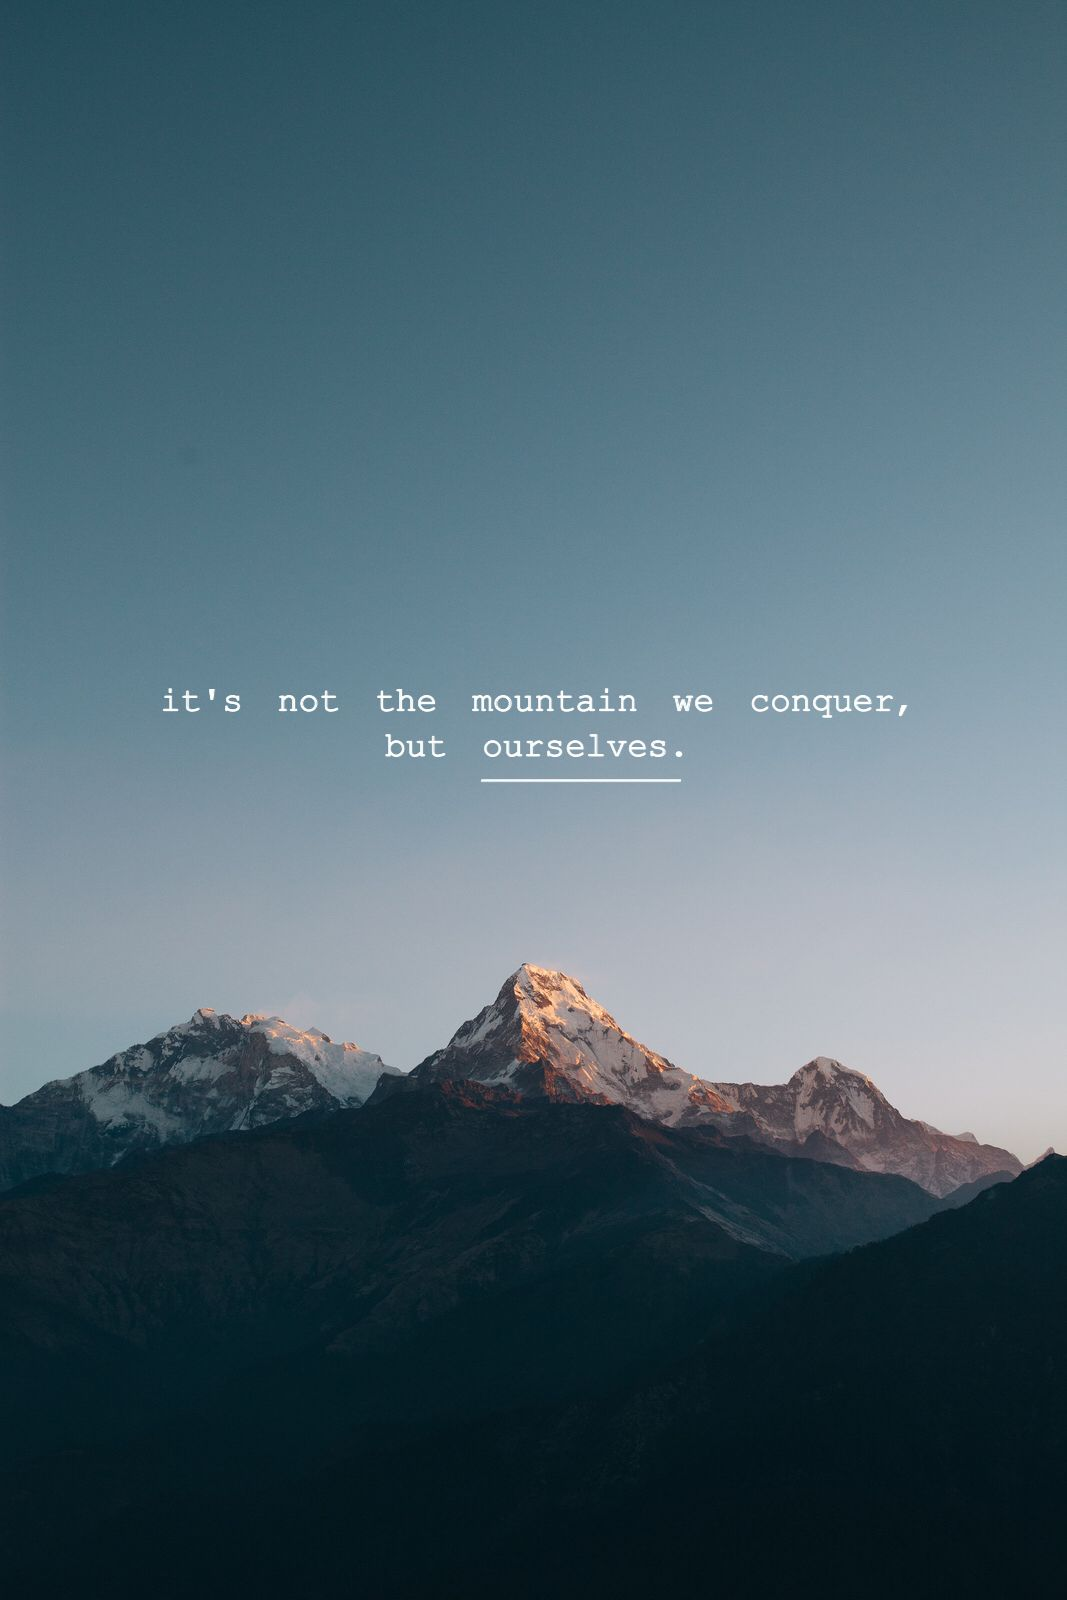 Cute Love Quote Wallpapers For Mobile Phone Wallpaper It S Not The Mountain We Conquer But